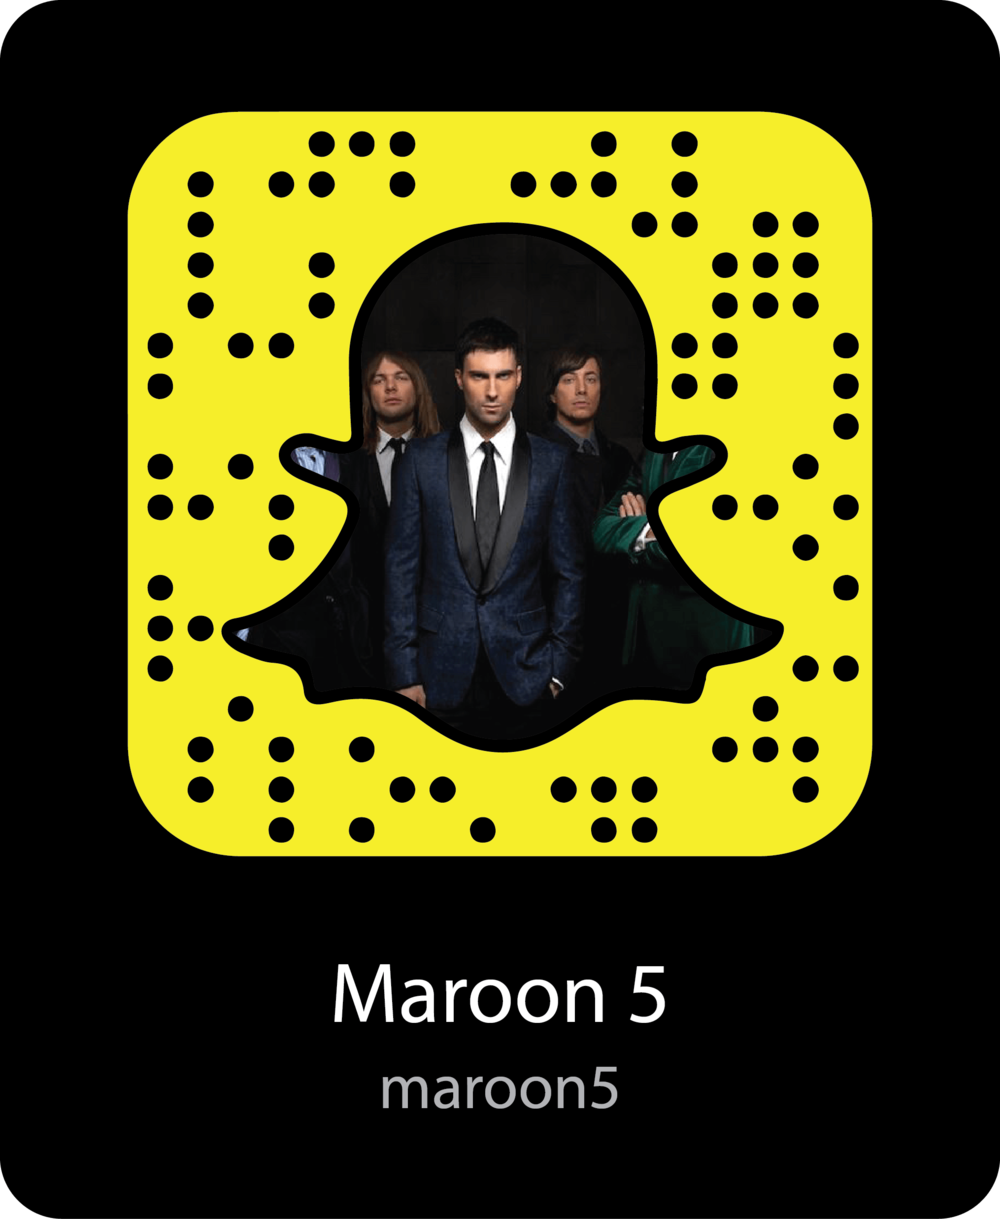 maroon-5-celebrity-snapchat-snapcode